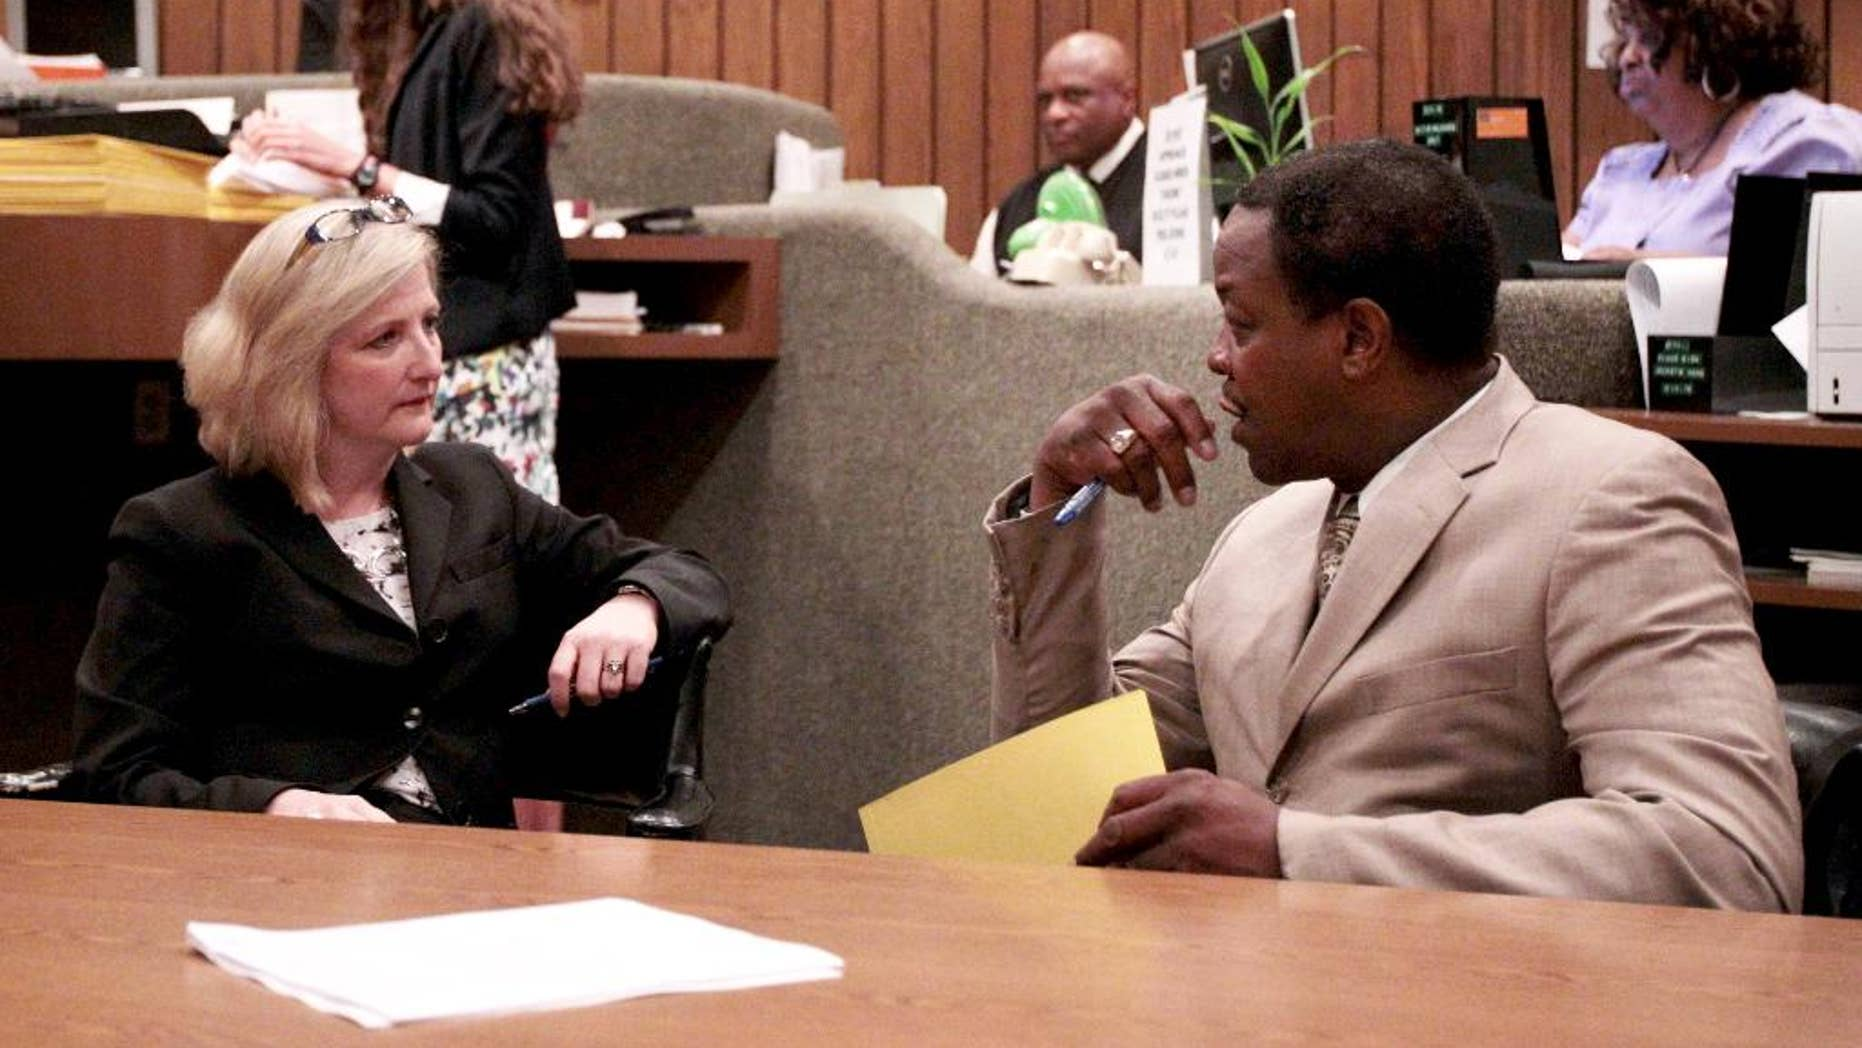 Prosecutors Alanda Dwyer, left, and Reginald Henderson talk before Judge Loyce Lambert Ryan's general session Court Division 15 is called to order as they await the video arraignment of Tremaine Wilbourn on charges of first degree murder for the death of Memphis Police officer Sean Bolton, Wednesday, Aug. 5, 2015, in Memphis. Wilbourn did not enter a plea on the charge of first-degree murder. (Mike Brown/The Commercial Appeal via AP)